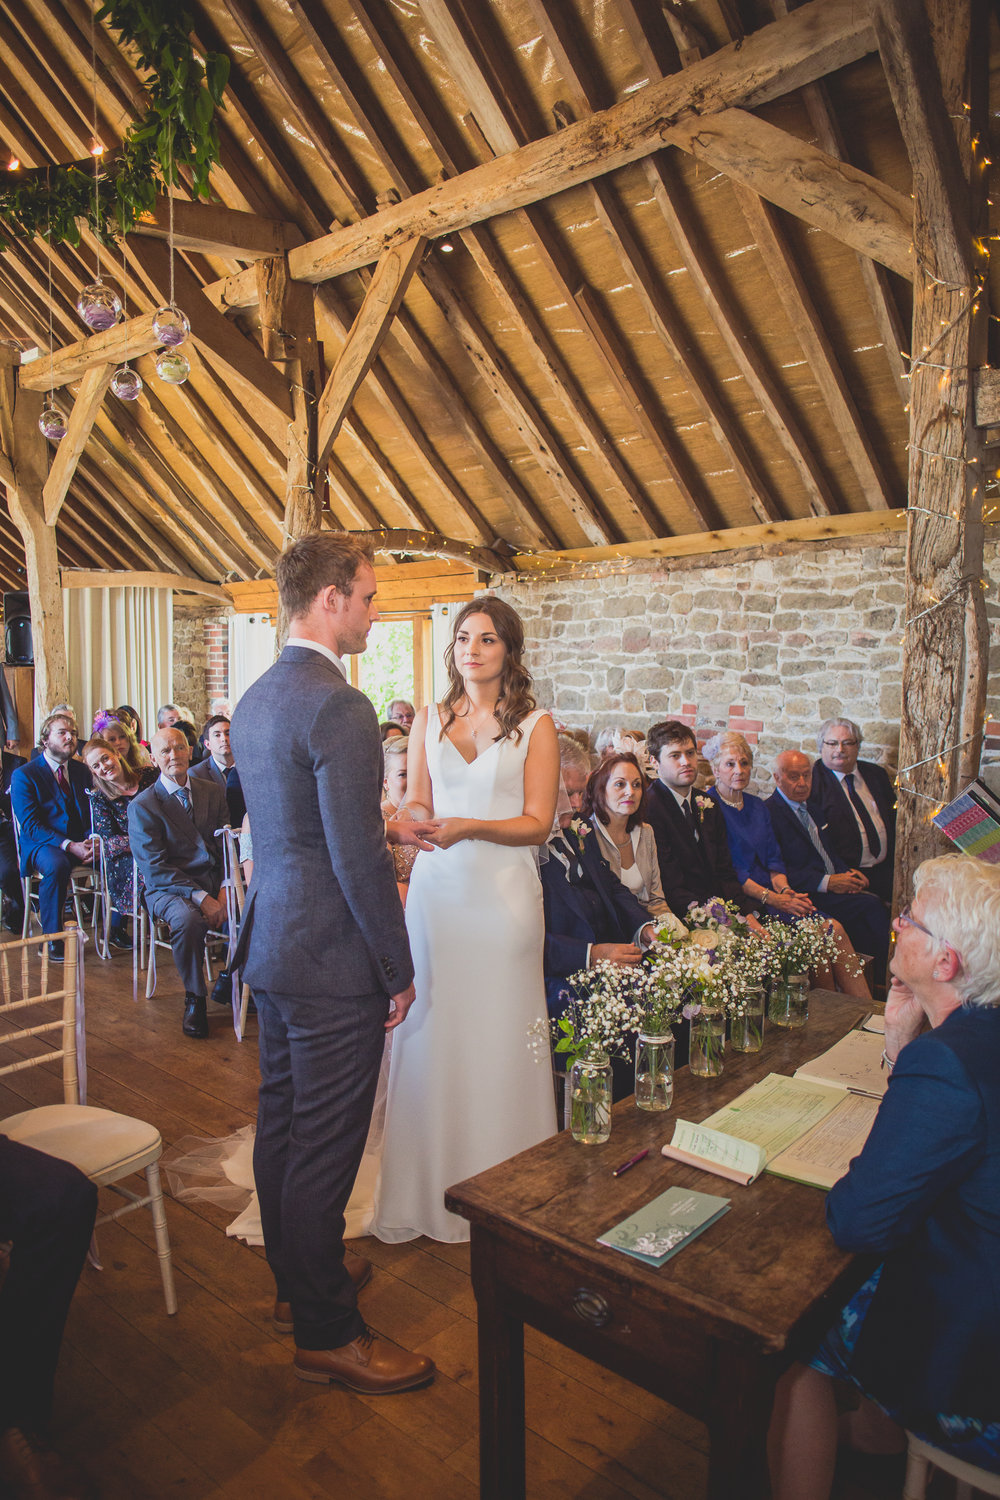 Grittenham Barn female wedding photographers west sussex petworth social-60.jpg